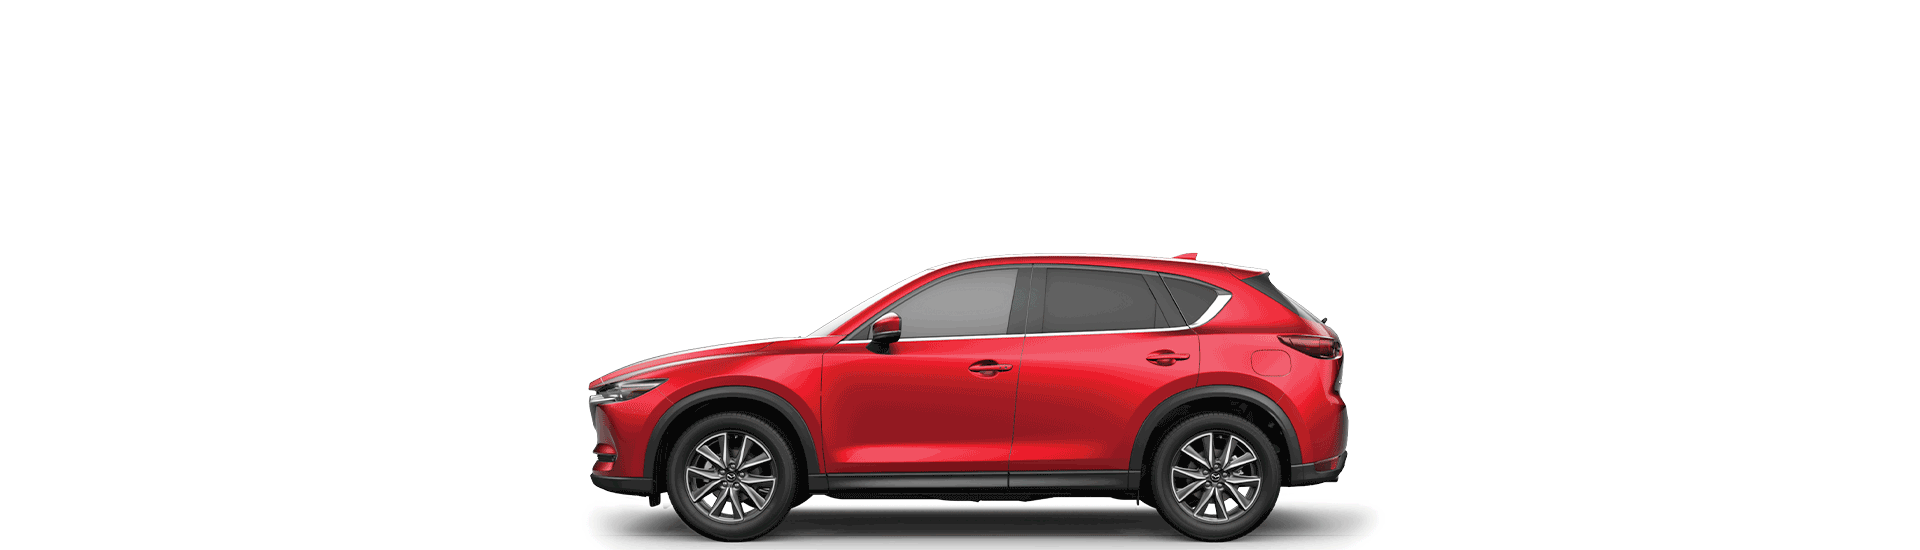 Test Drive a 2019 Mazda CX-5 today!